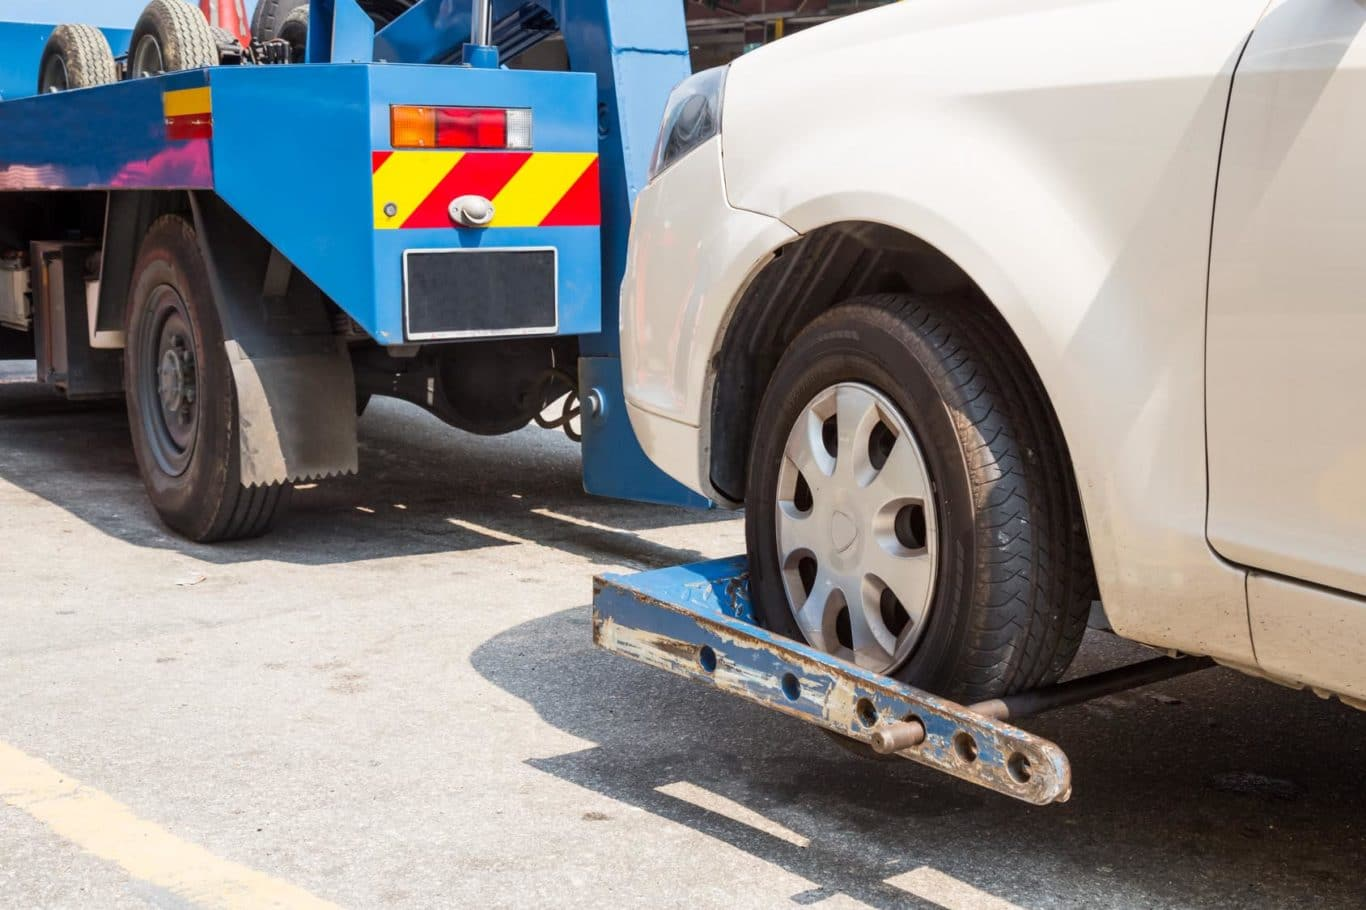 Ranelagh expert Car Towing services